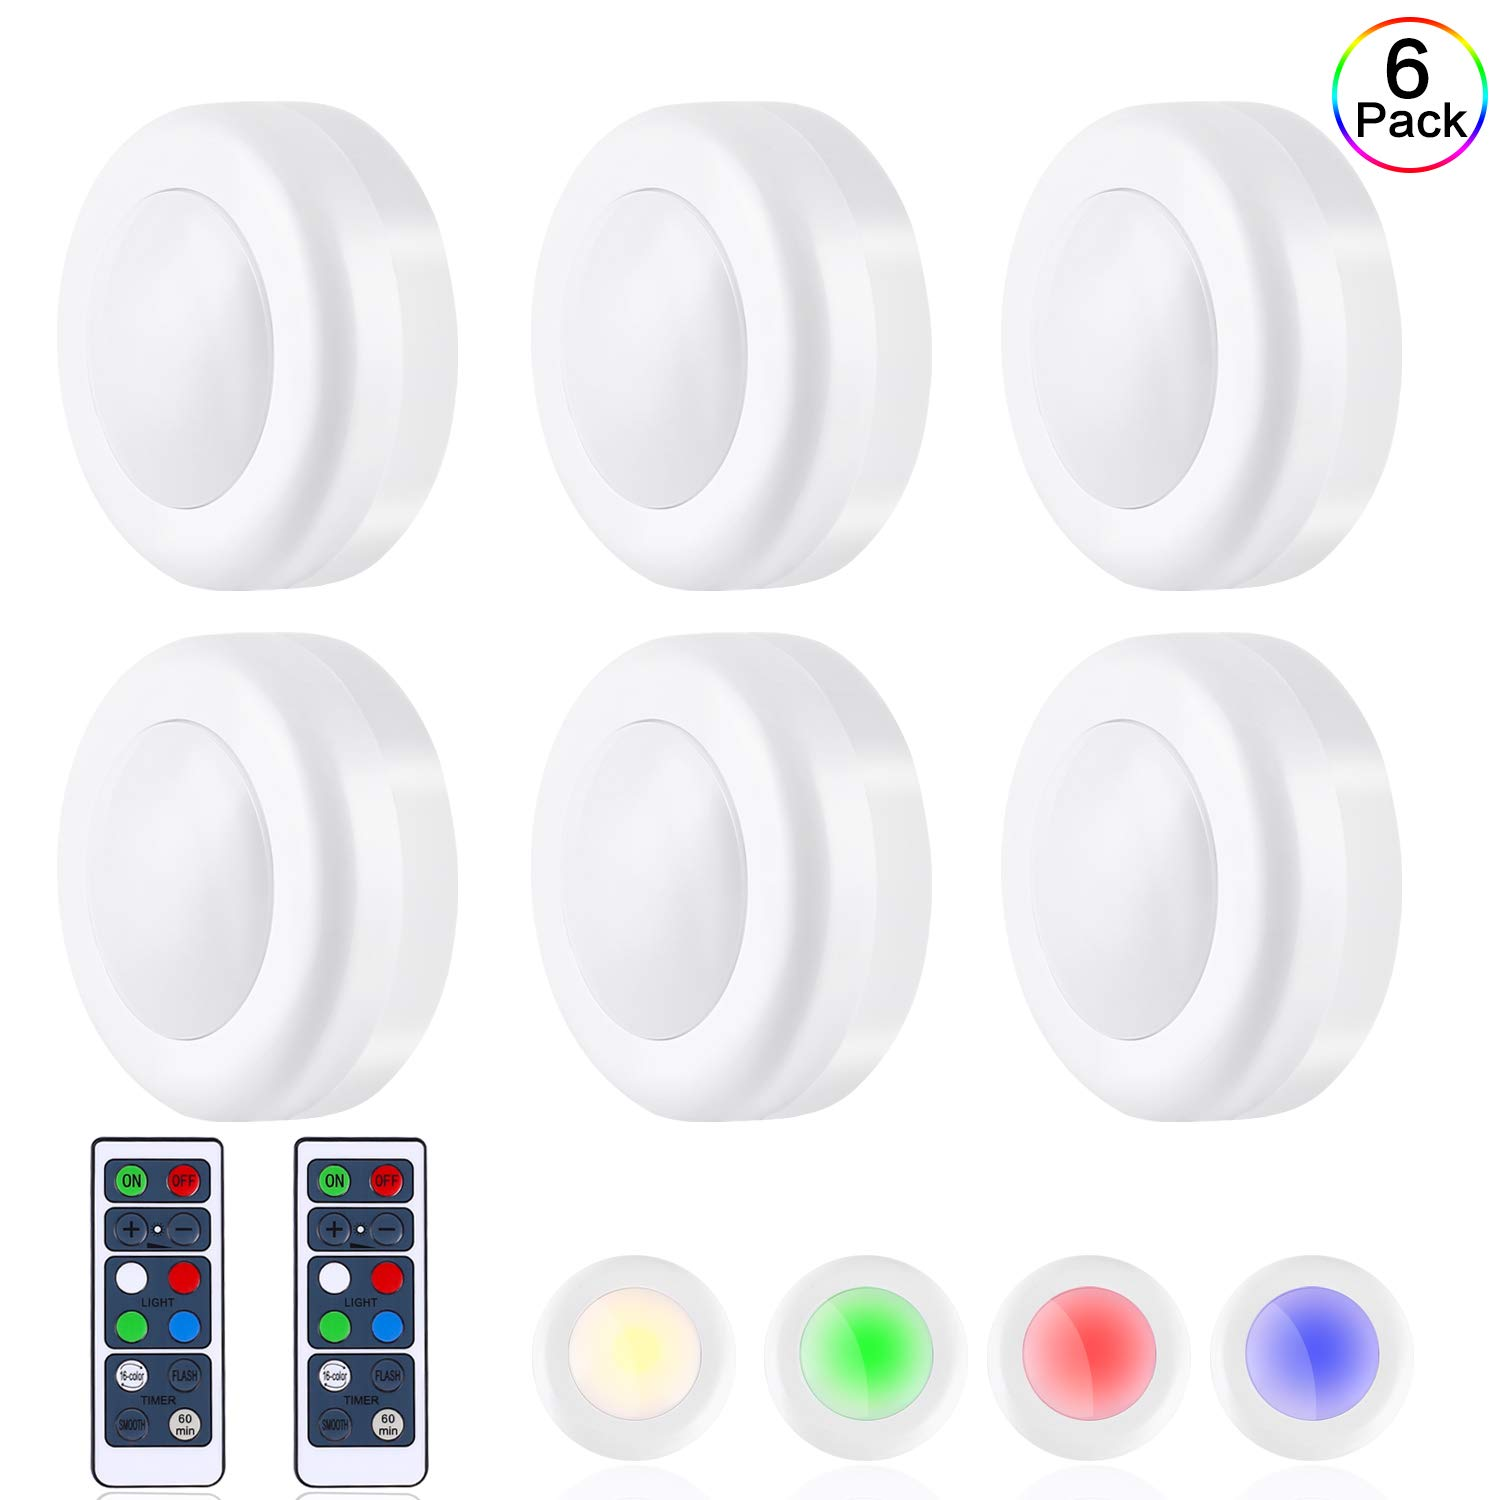 TaoHorse Wireless LED Puck Lights 6 Pack with Remote, 16 Colors 3 Modes Battery Operated Dimmable Closet Lights with 2 Remote Control Switch Dimmer, Wireless Under Cabinet Lighting with 60 mins Timer